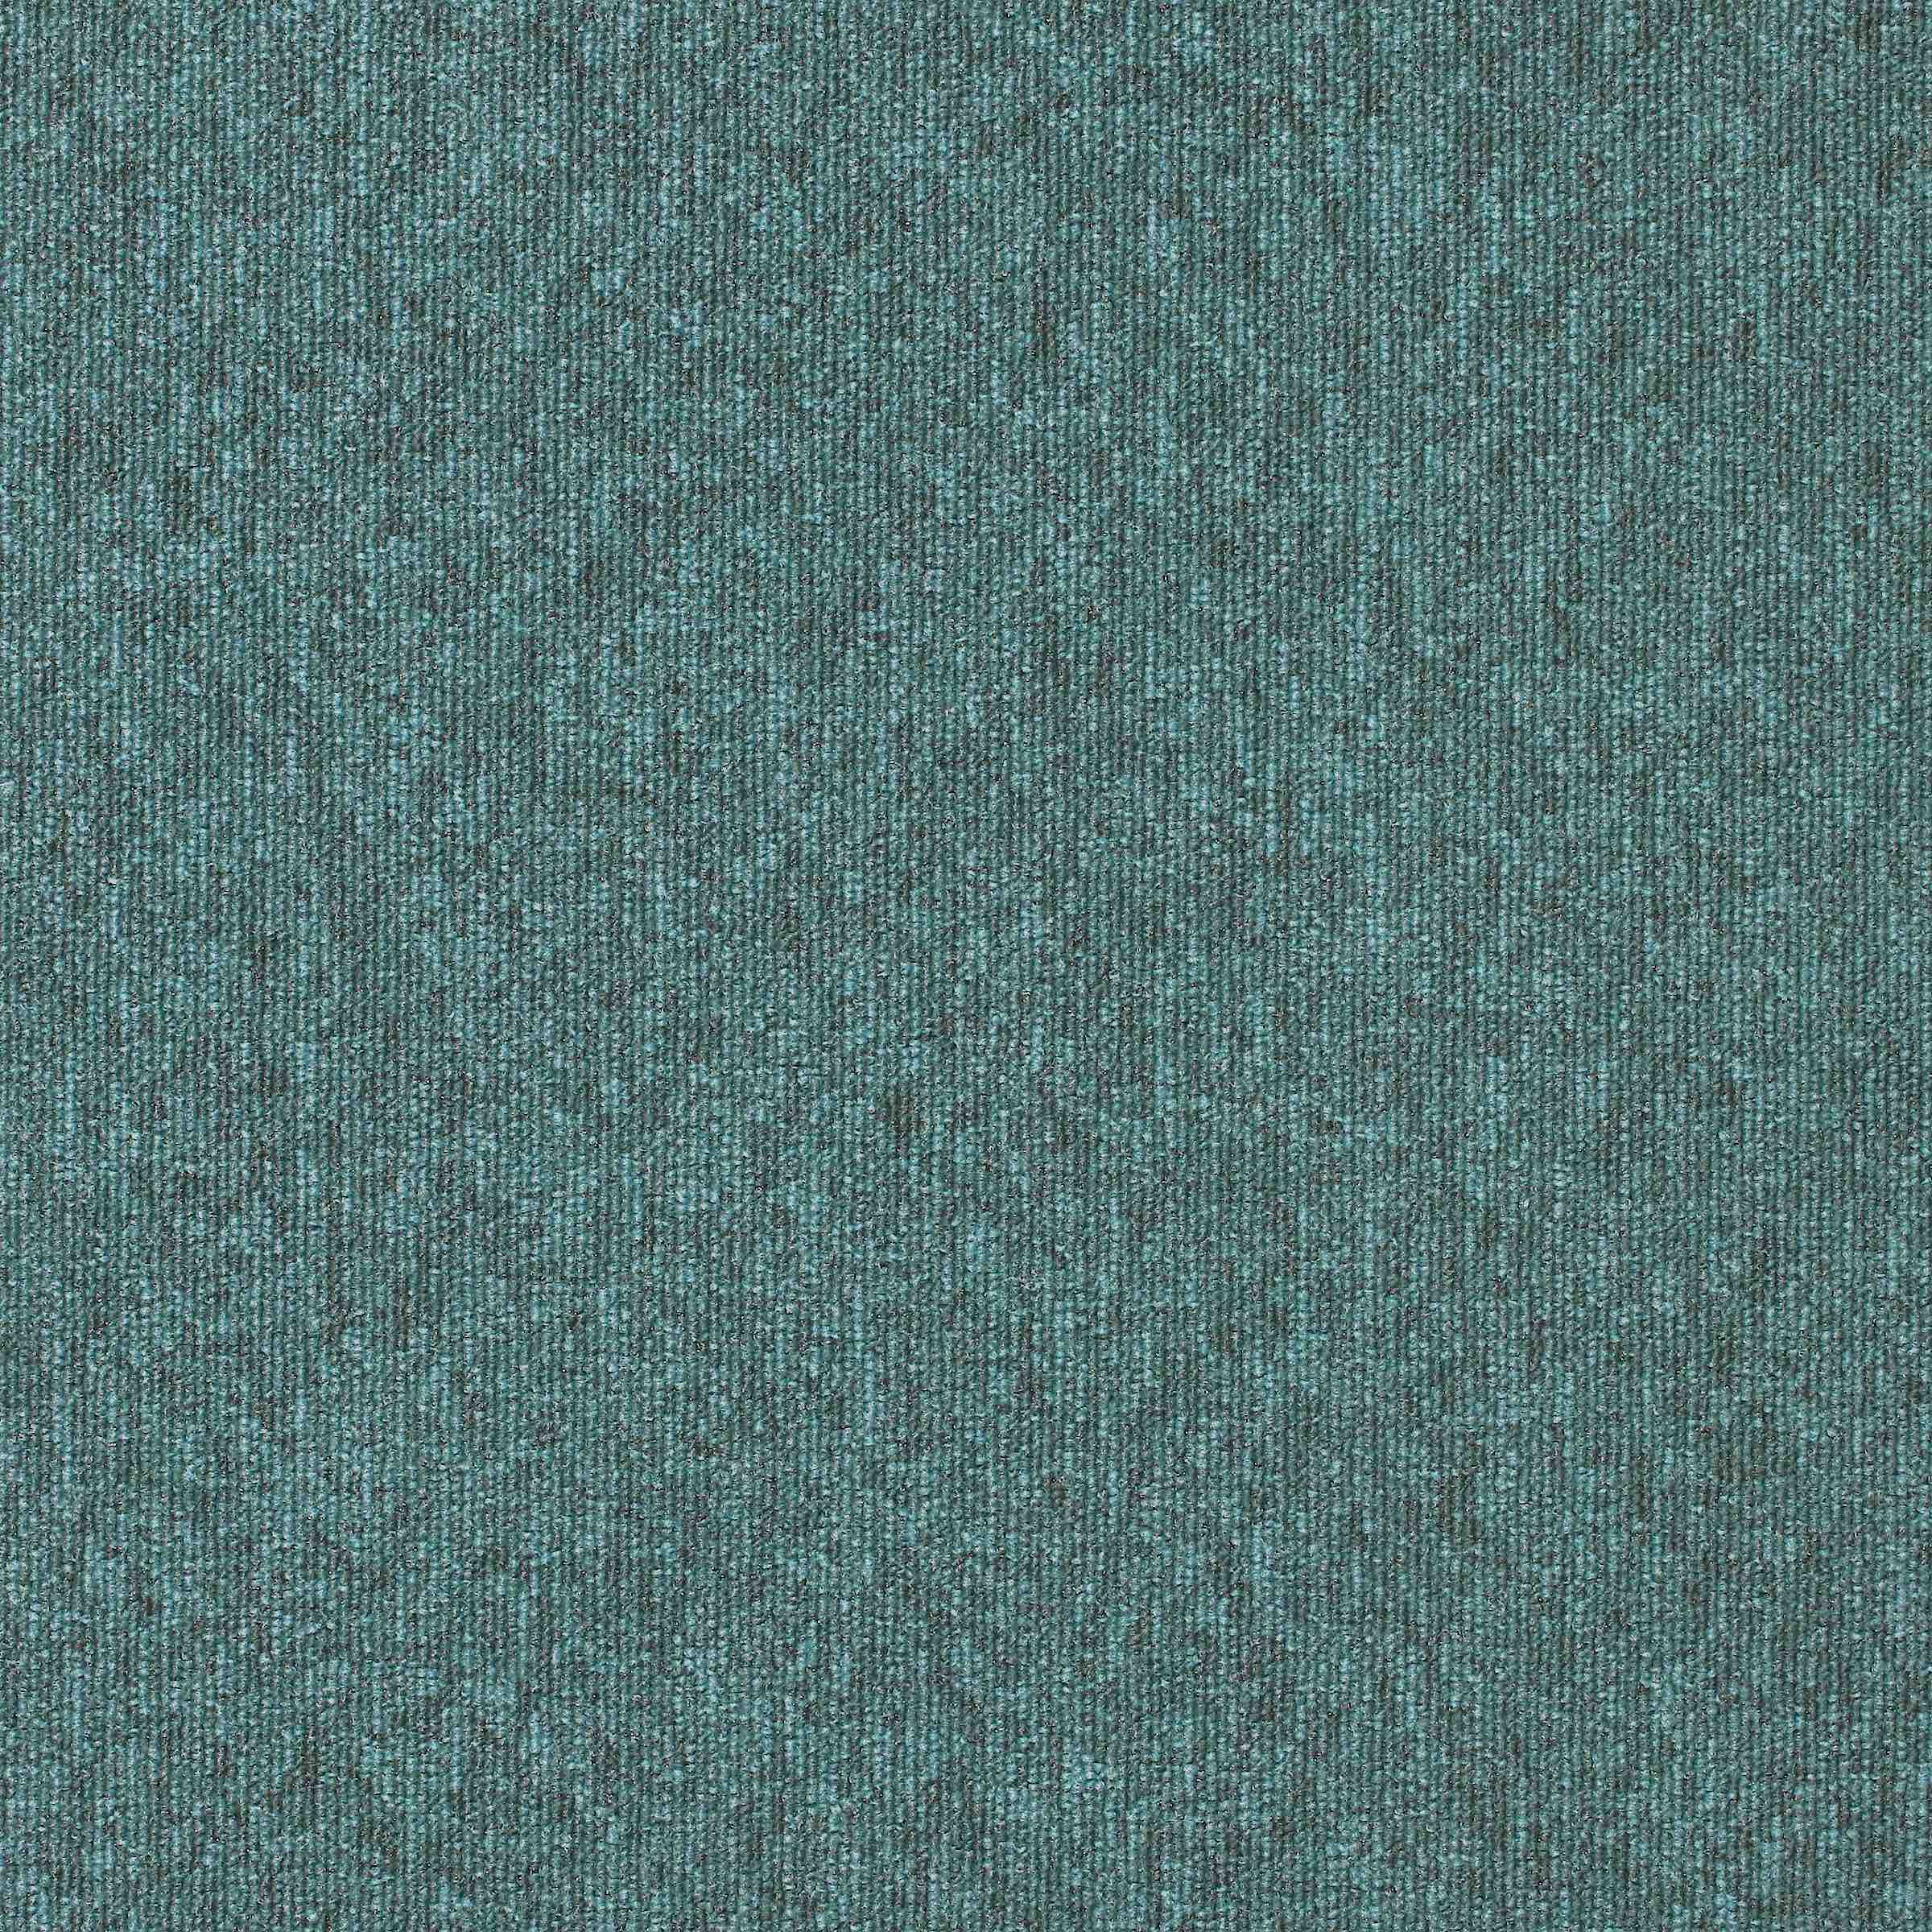 Diversity | Racing Green, 505 | Paragon Carpet Tiles | Commercial Carpet Tiles